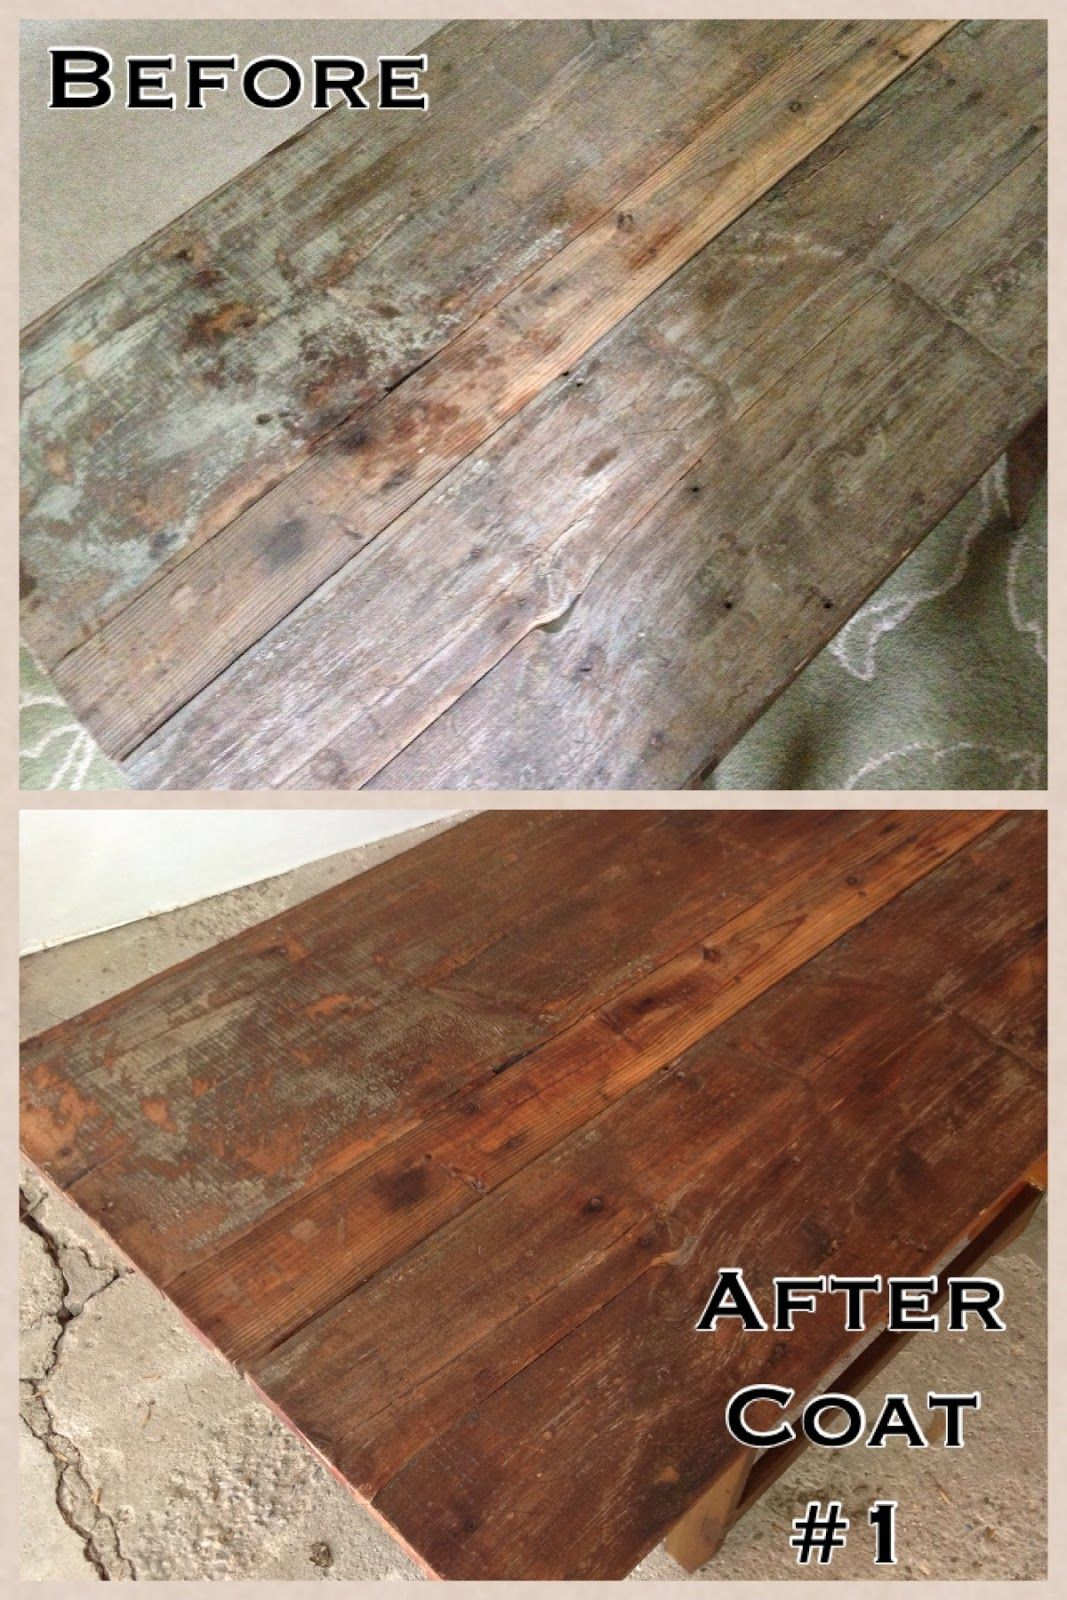 Felicity defined refinishing an old table using tung oil